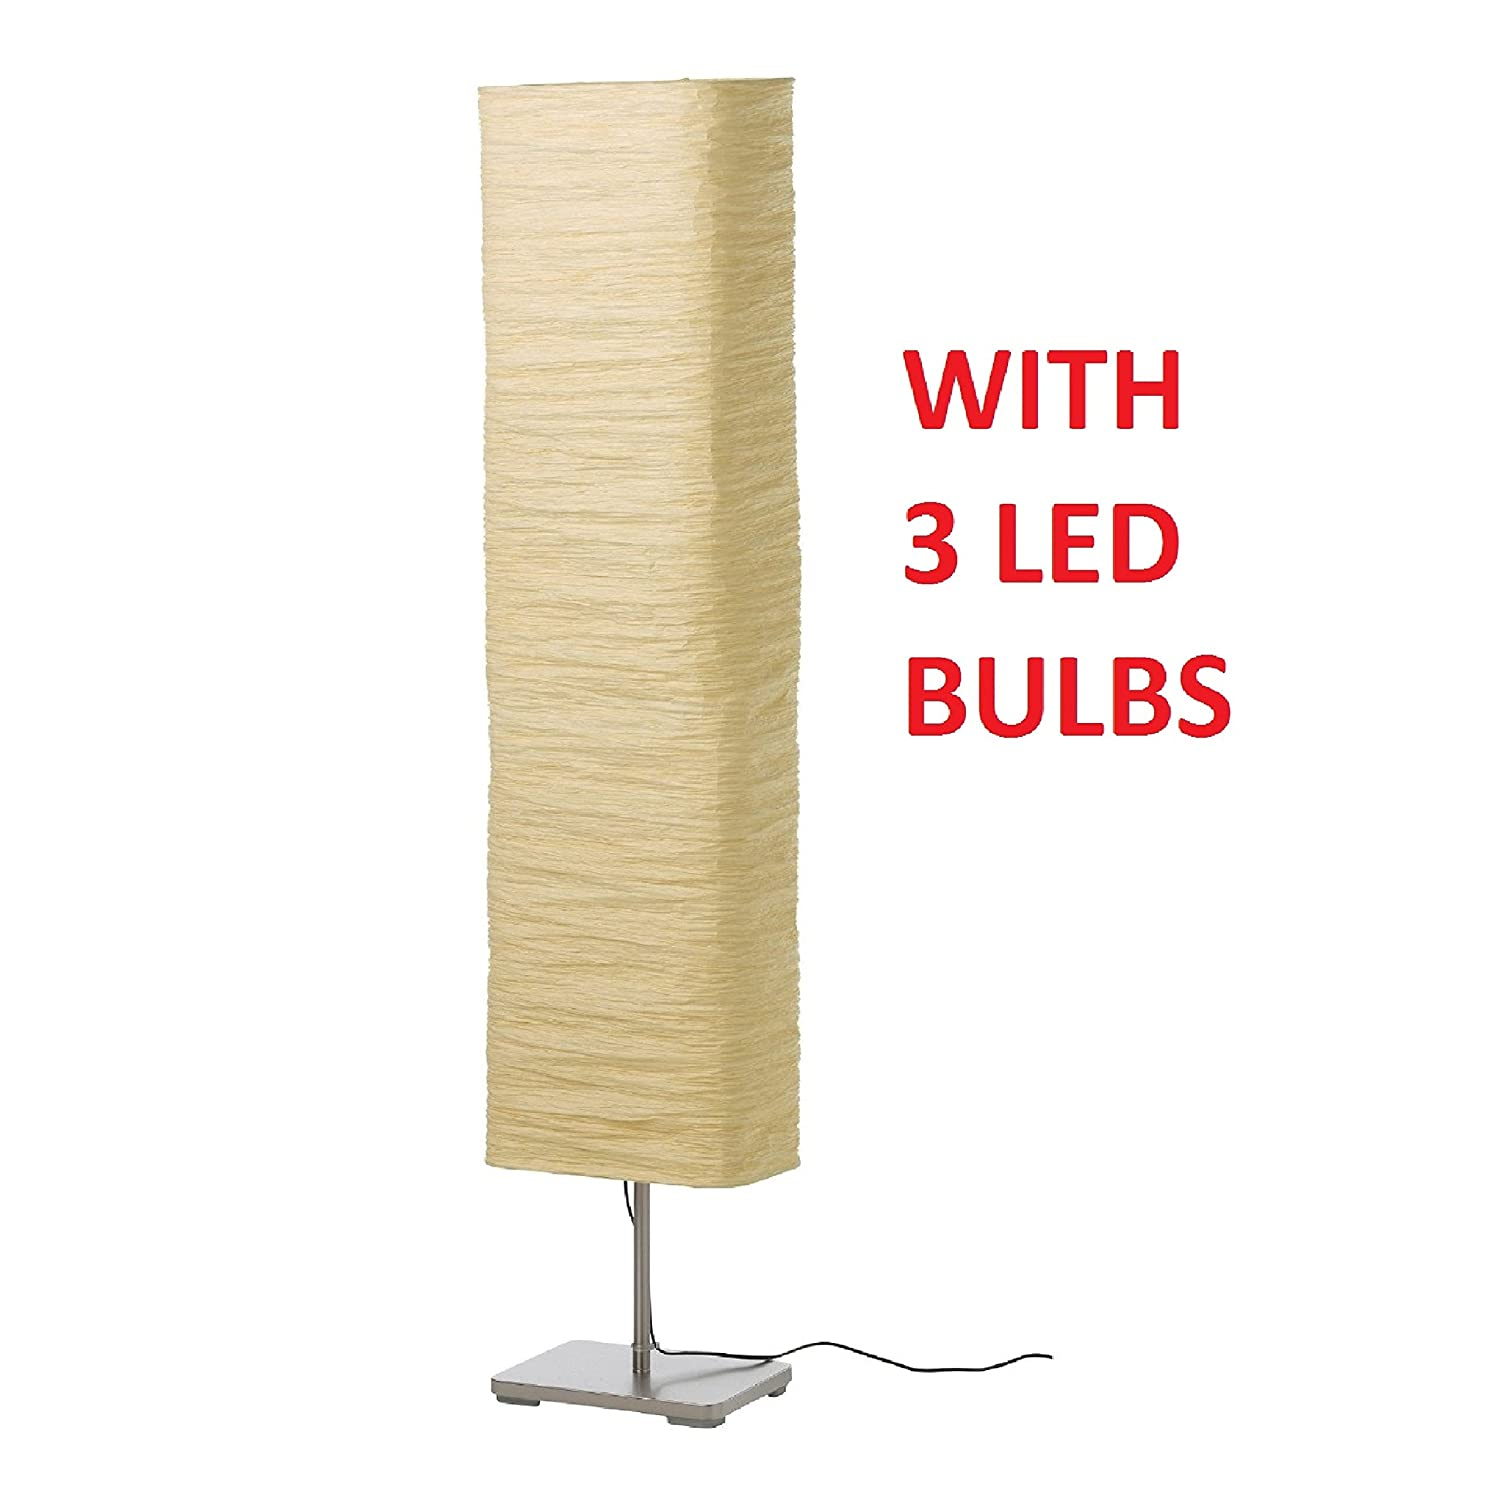 Elegant Amazon.com: Ikea 302.322.25 Magnarp Floor Lamp, Natural: Home Improvement